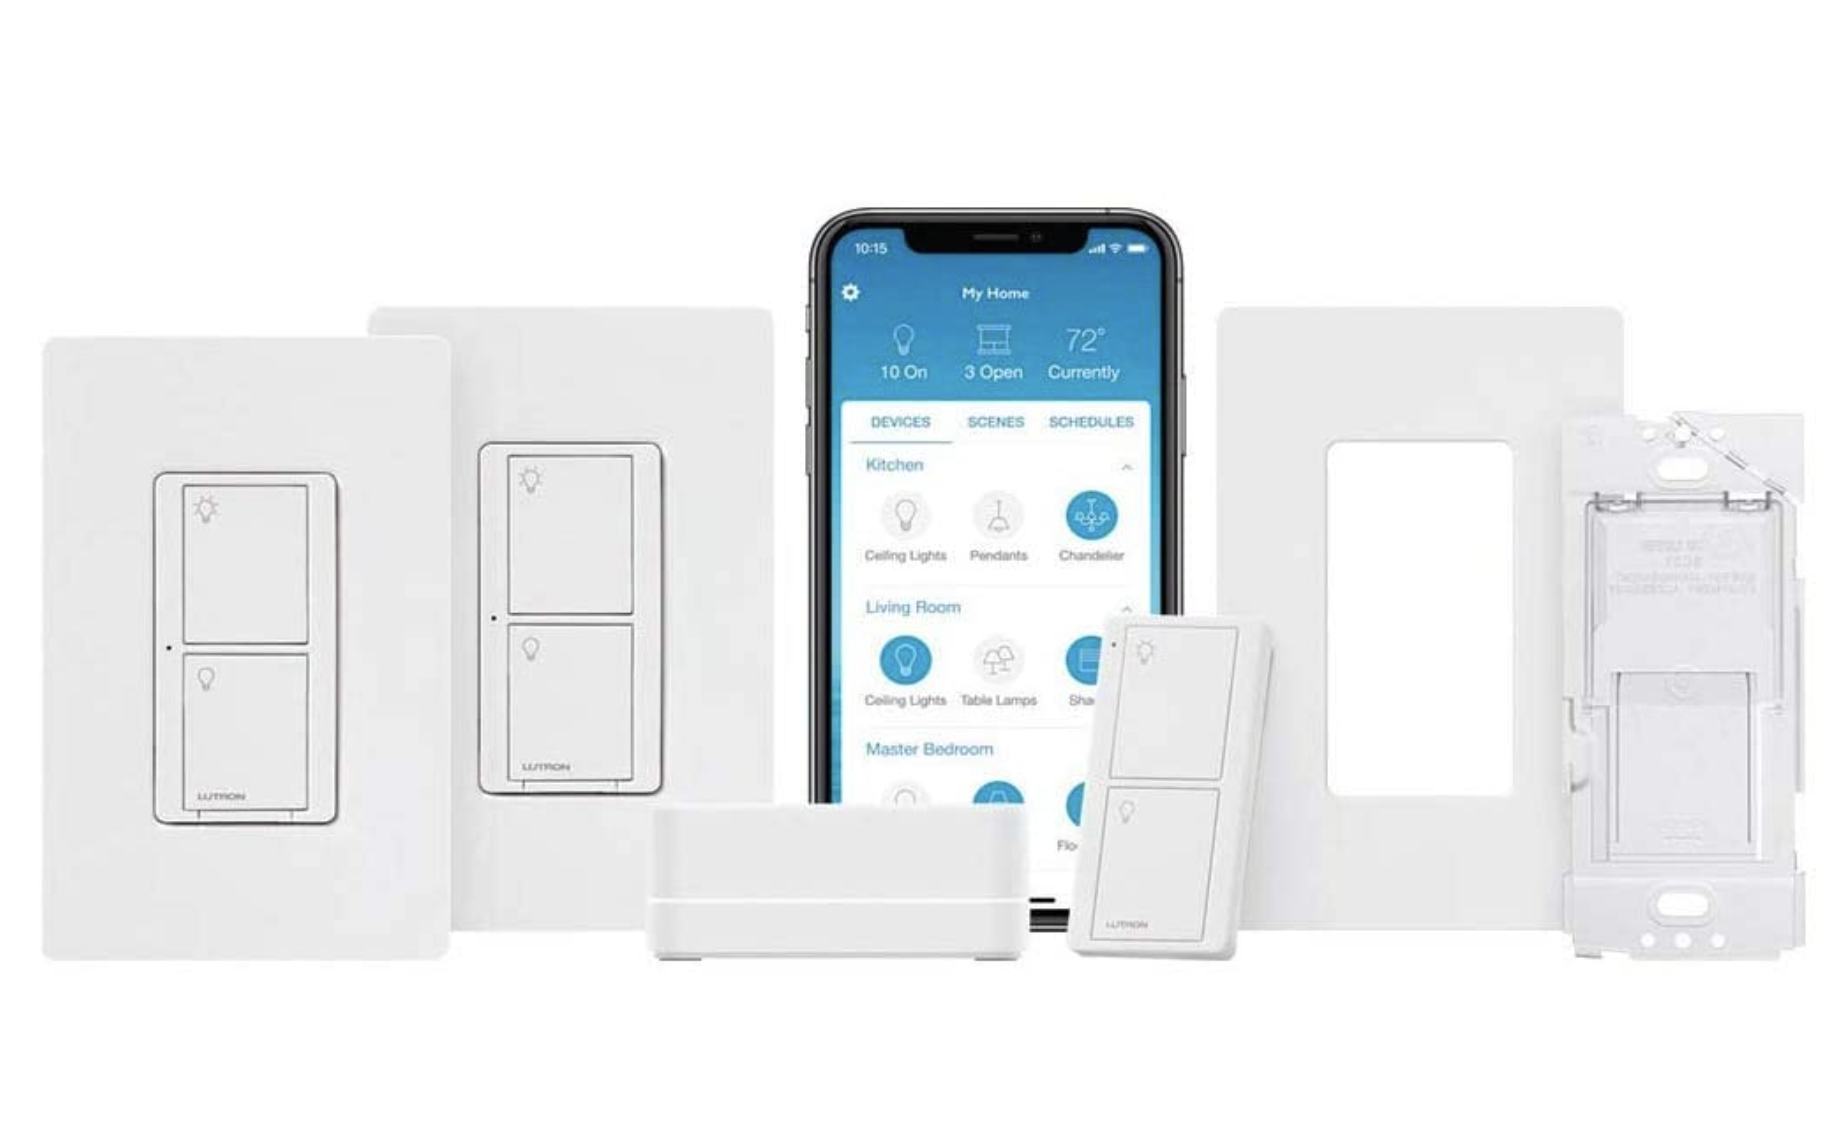 Set Up Your Smart Home Lighting With The Discounted Lutron Caseta Deluxe Smart Switch Kit